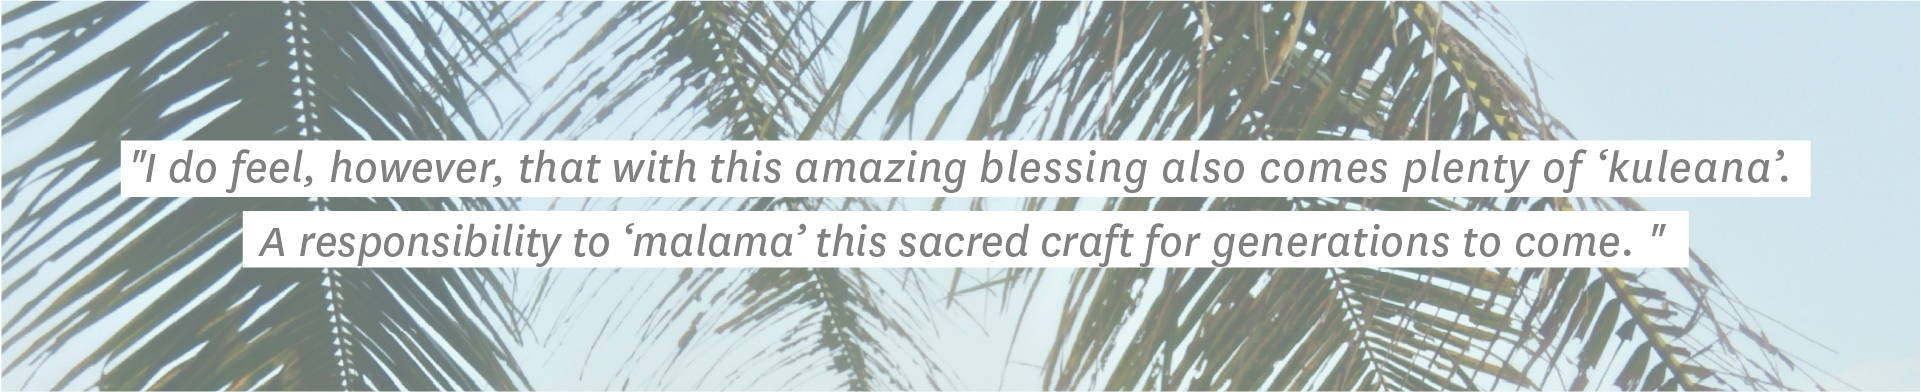 """""""I do feel, however, that with this amazing blessing also comes plenty of kuleana1. A responsibility to malama2 this sacred craft for generations to come."""""""